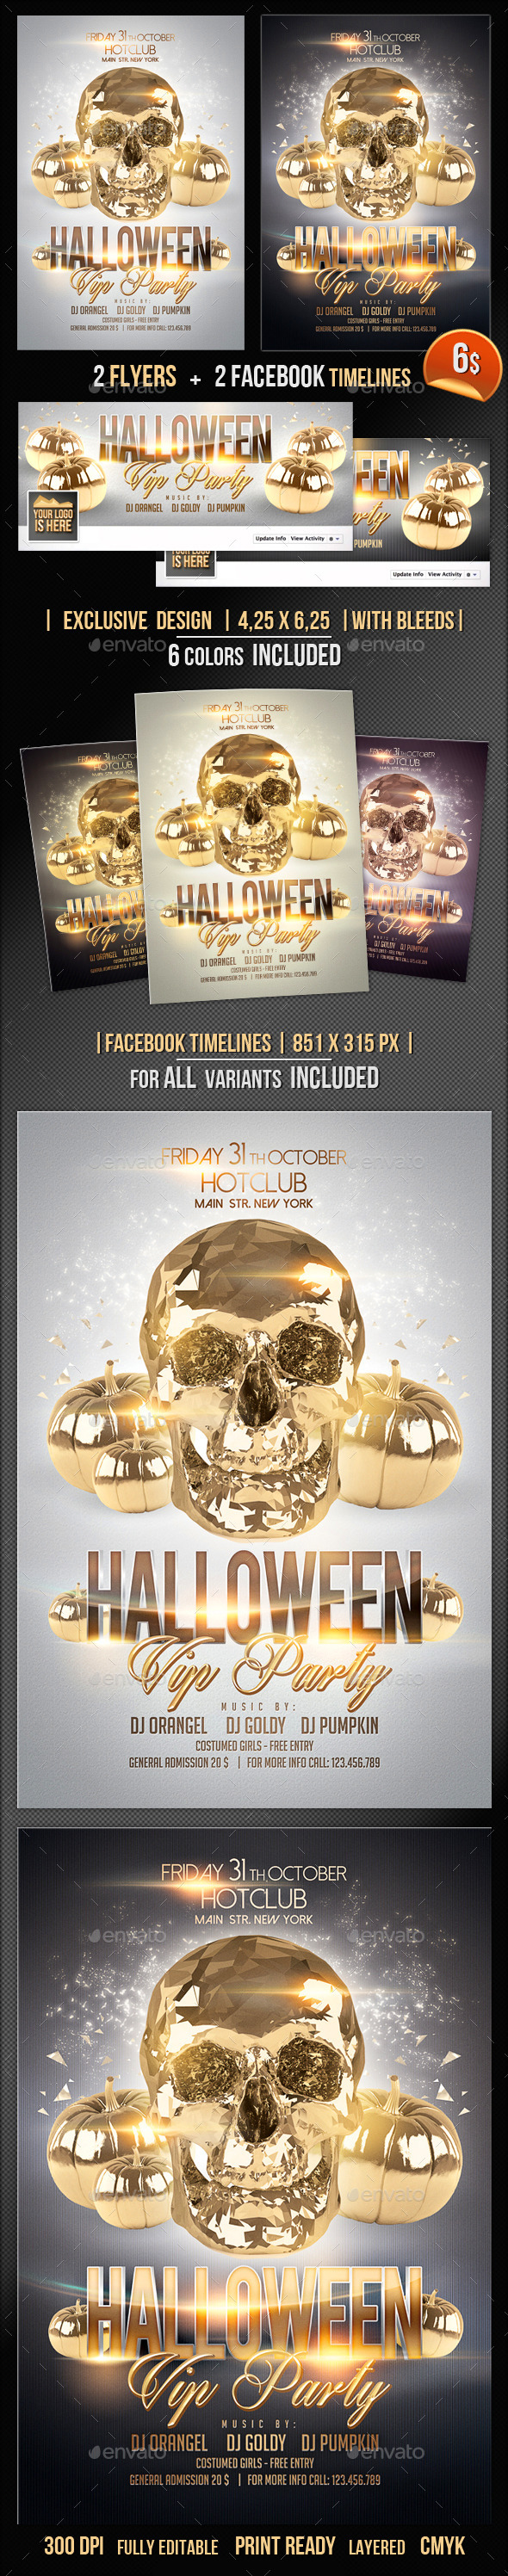 Halloween Flyer + Fb Timeline Vip Party - Events Flyers